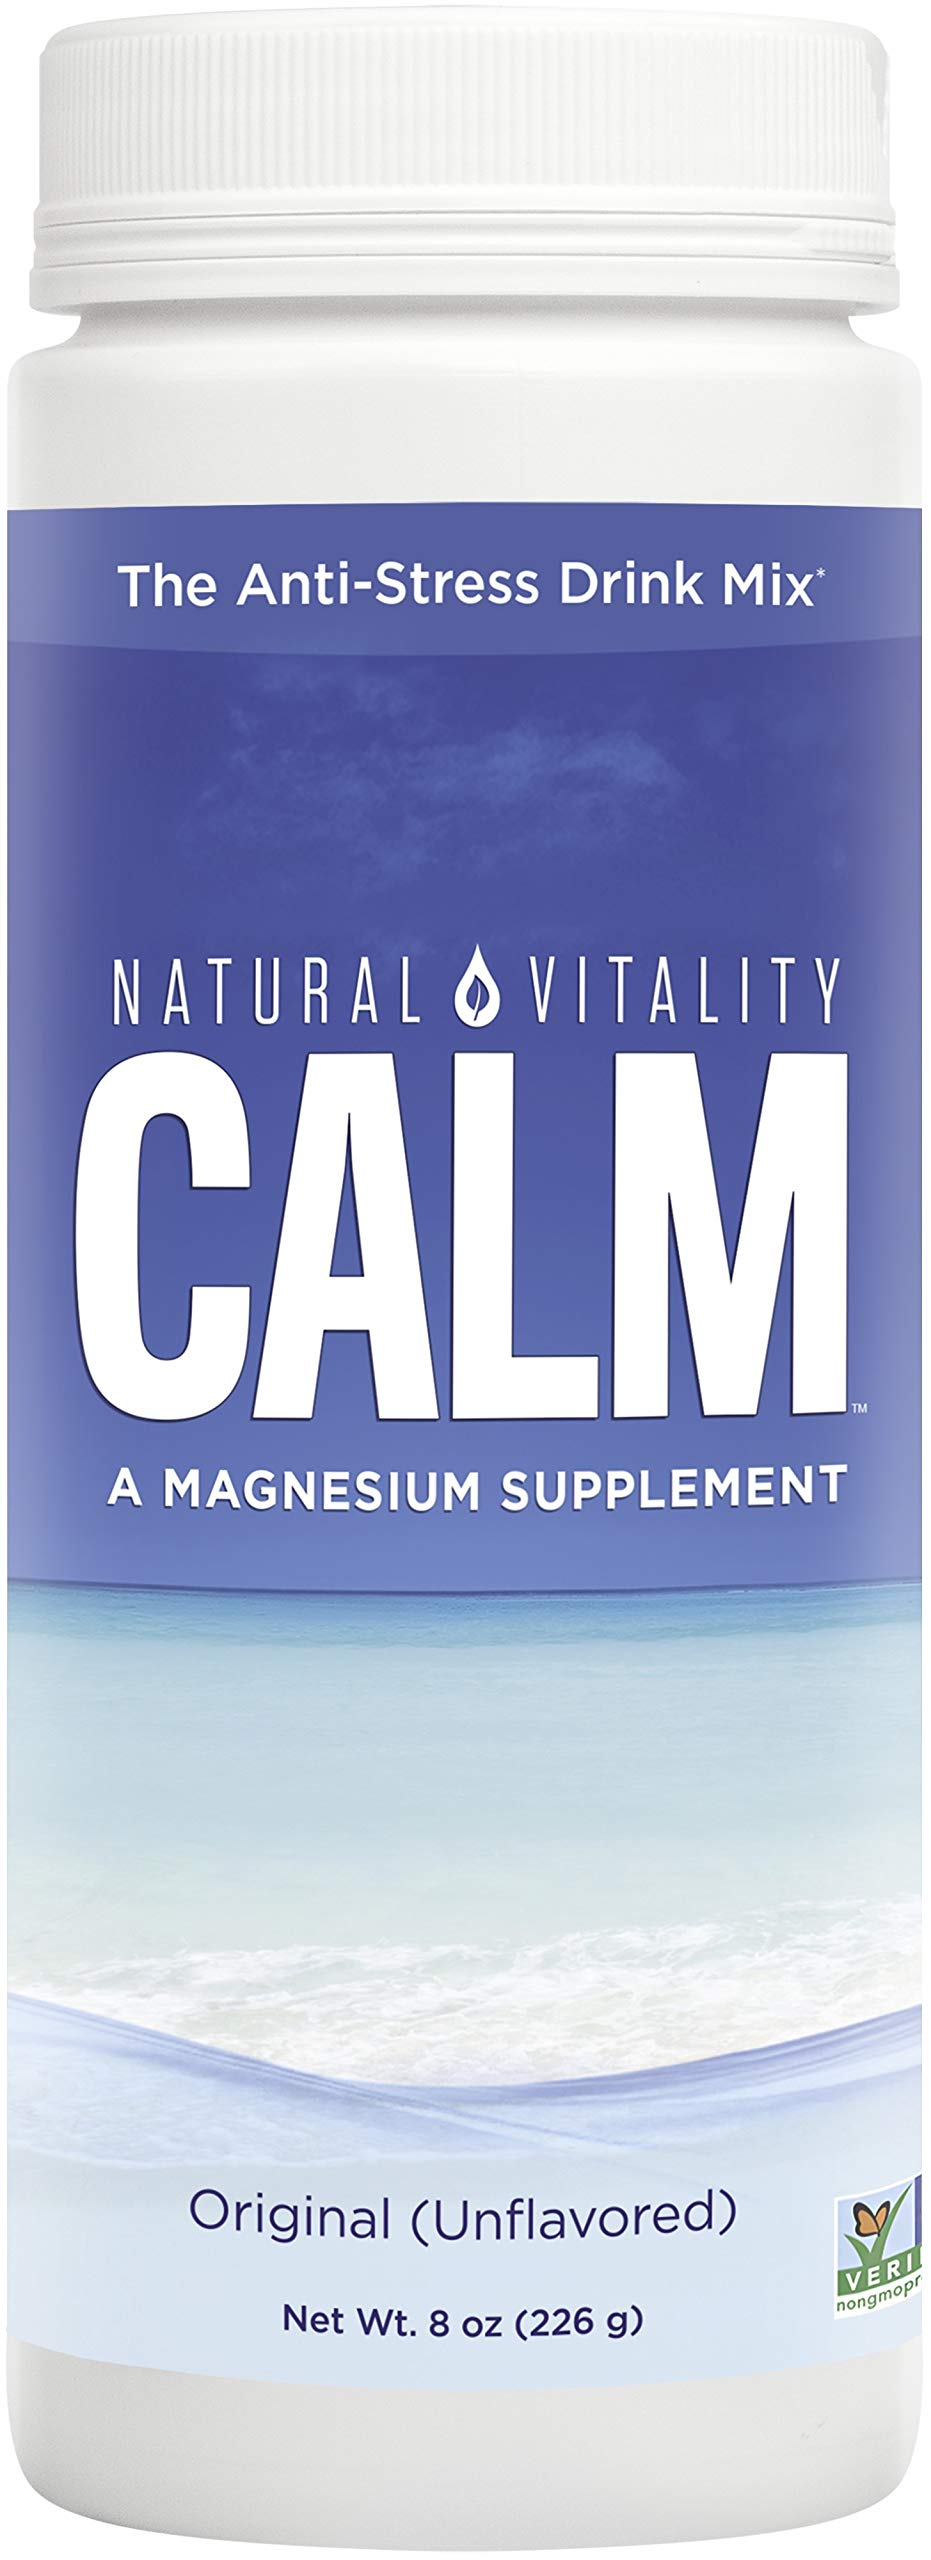 Natural Vitality Calm, Magnesium Citrate Supplement, Anti-Stress Drink Mix Powder, Unflavored - 8 Ounce (Packaging May Vary)